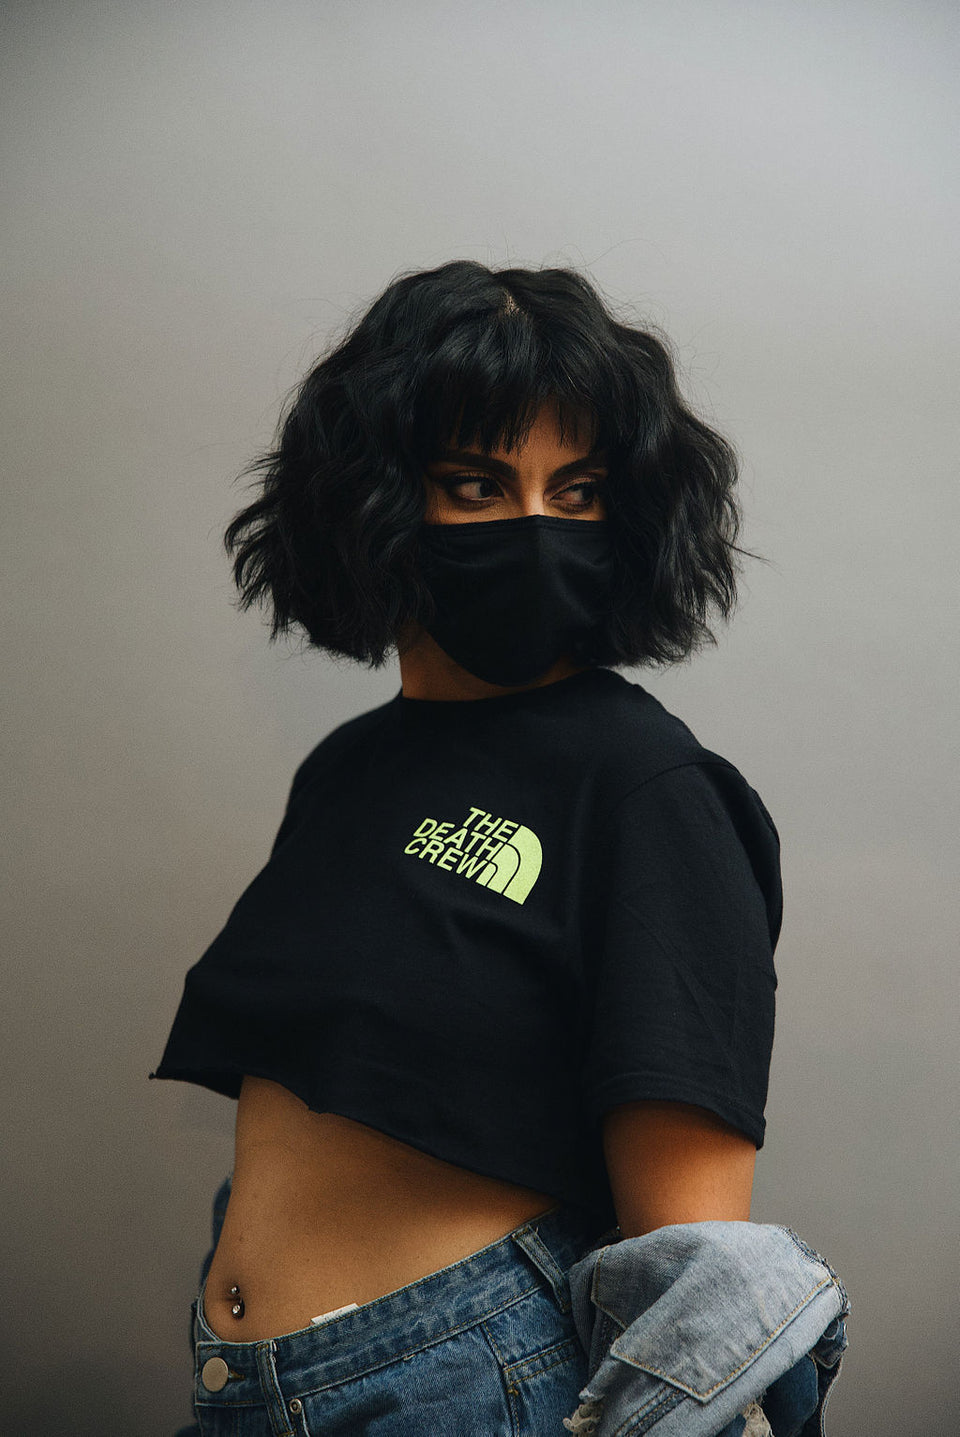 Safety Deathface Boyfriend Tee